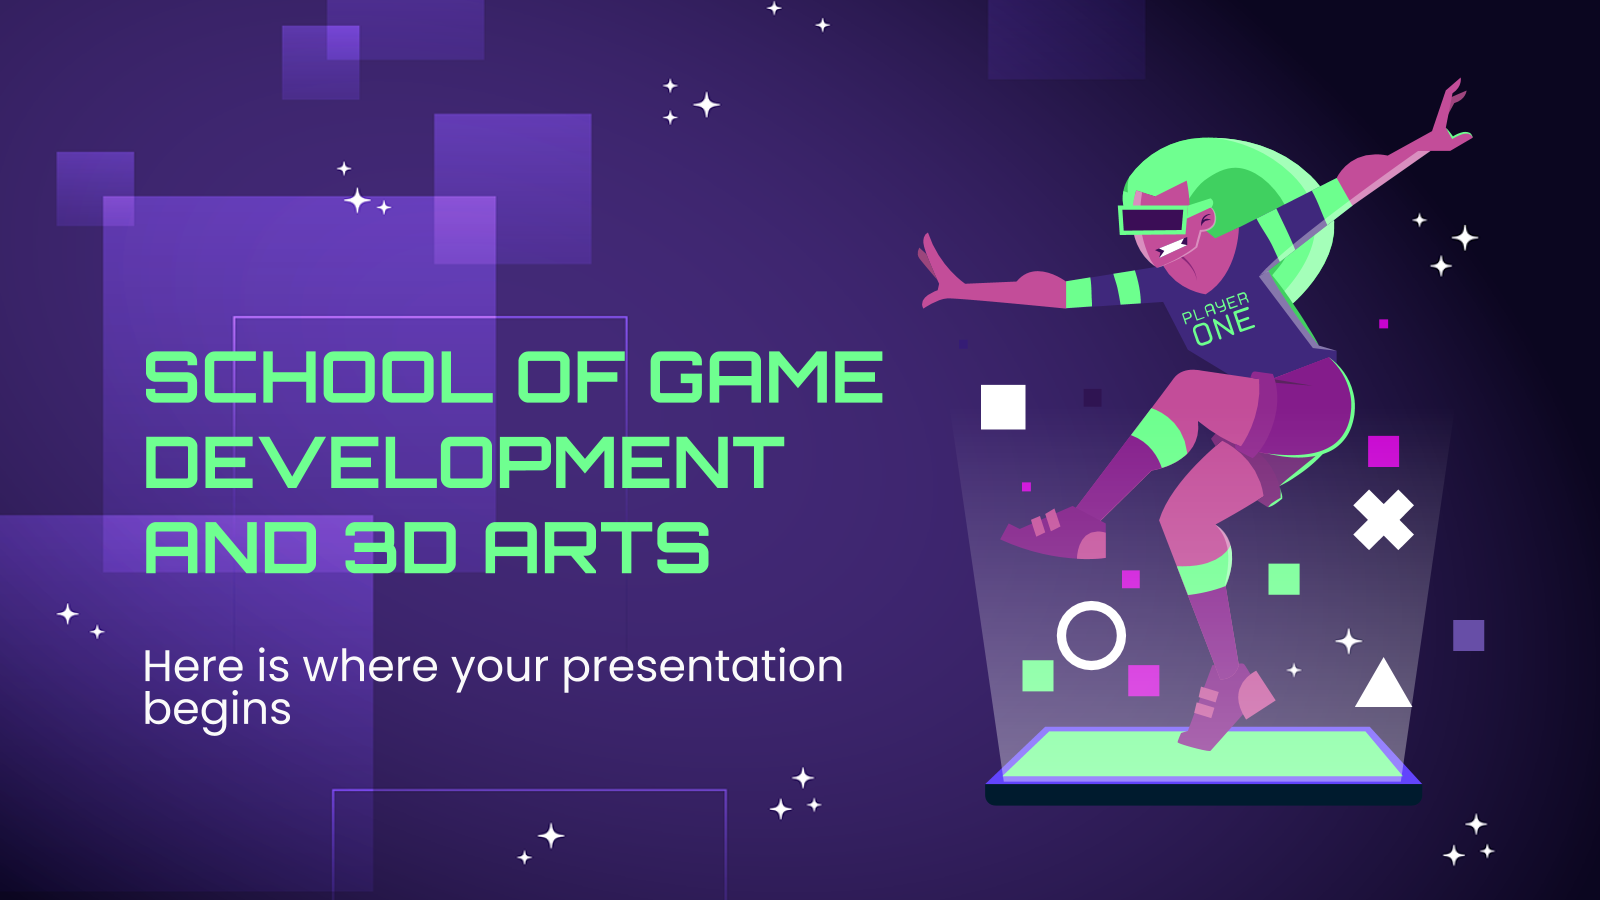 School of Game Development and 3D Arts presentation template